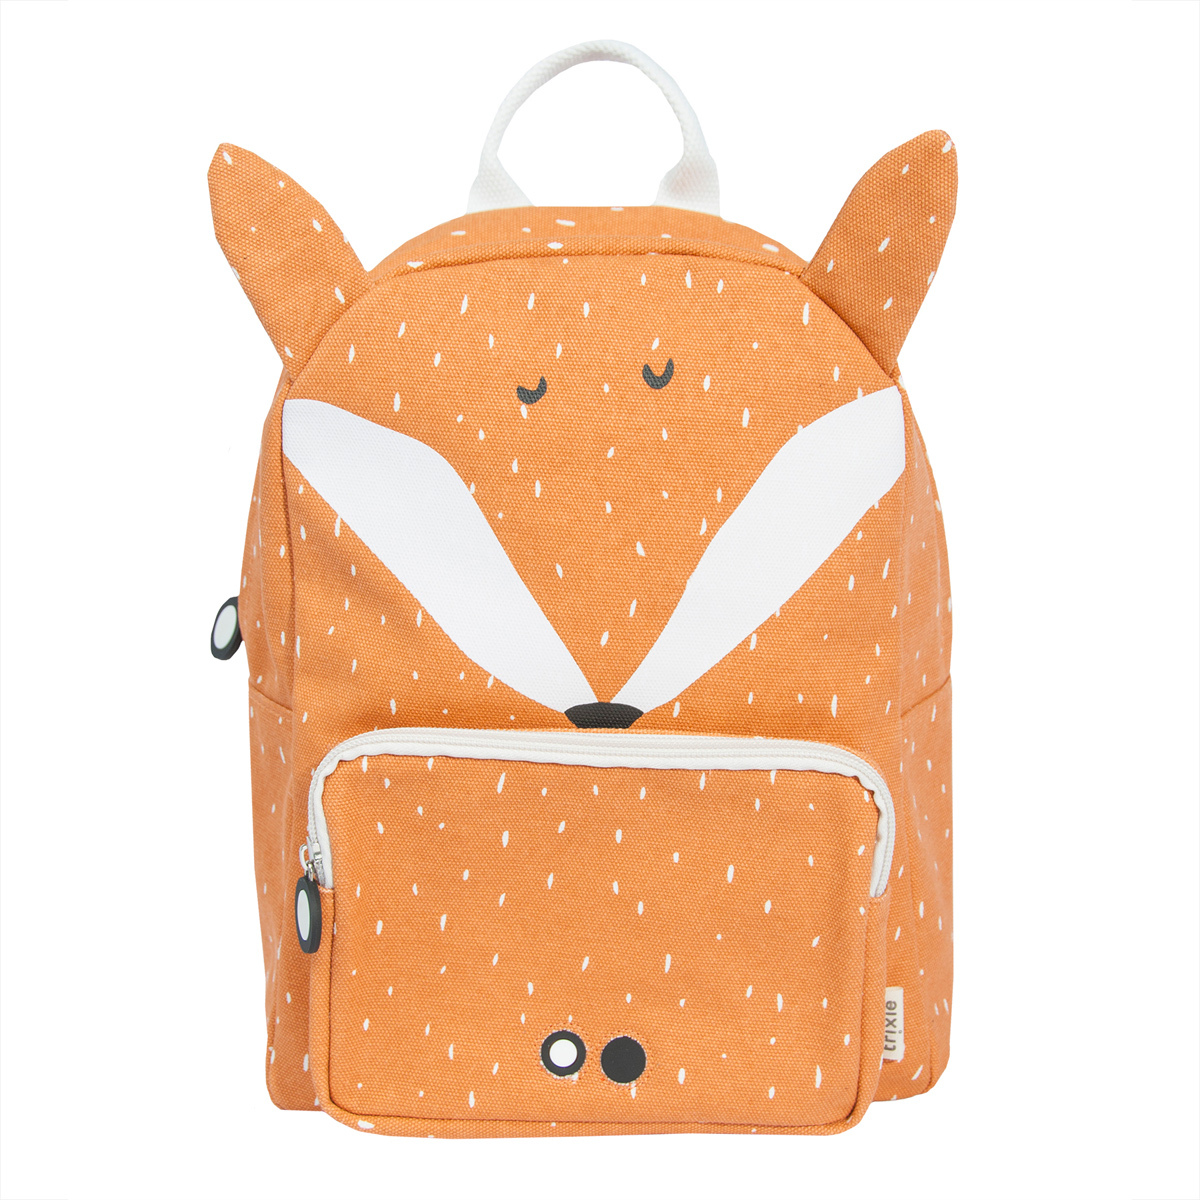 Bagagerie enfant Sac à Dos - Mr. Fox Sac à Dos - Mr. Fox